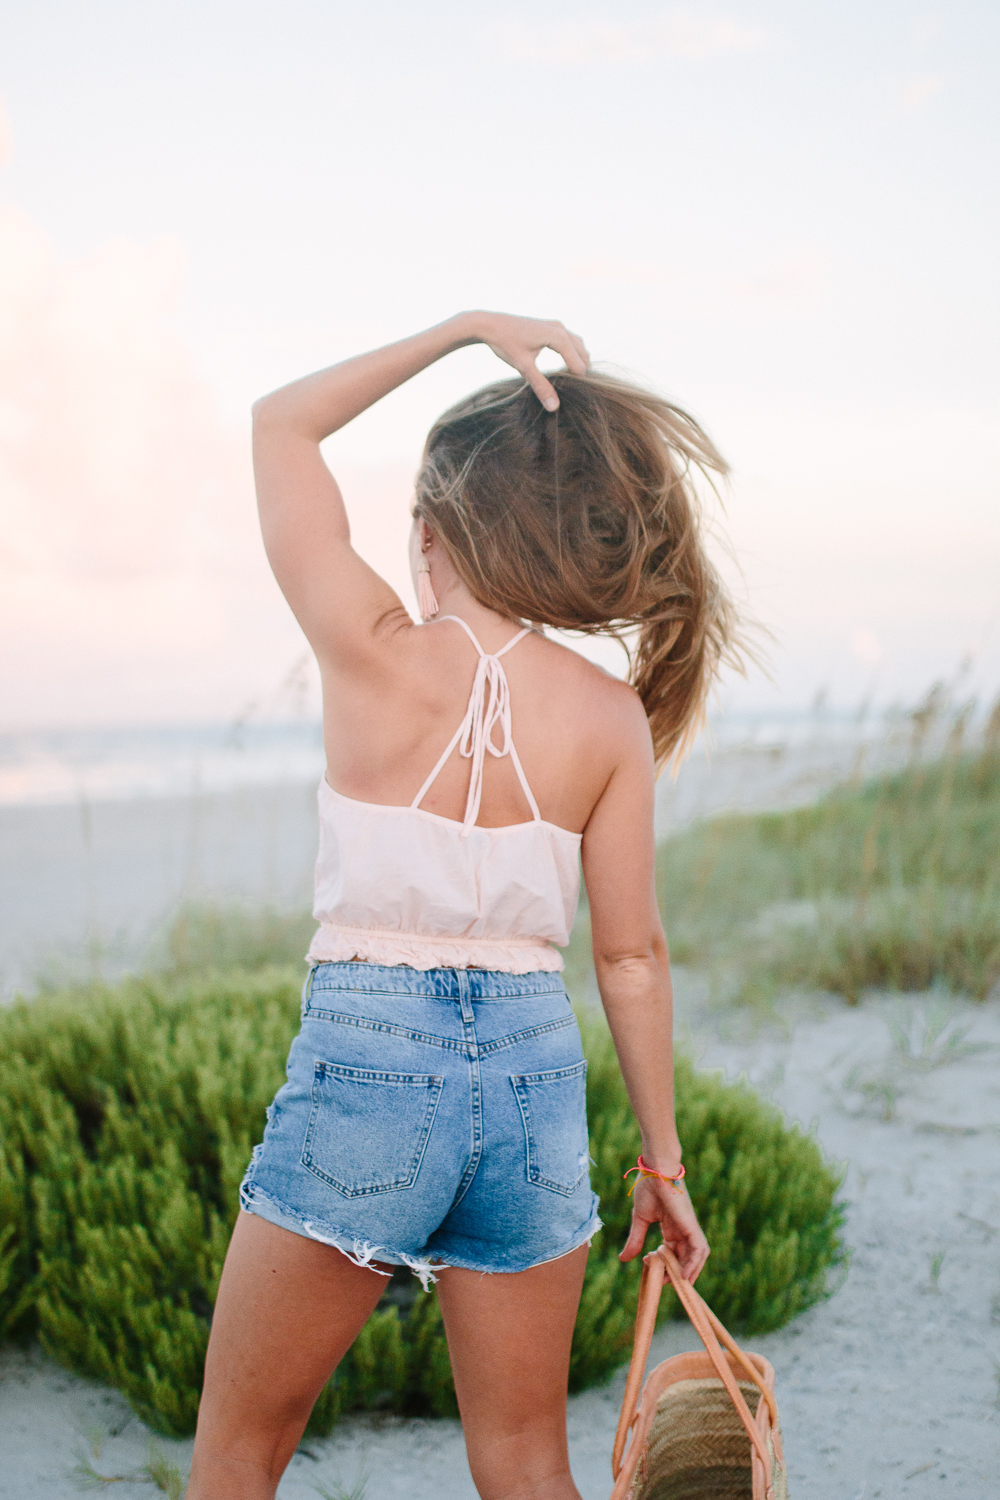 What to Wear to the Beach: A Casual Summer Outfit featuring an Aerie Crop Top, H&M High Waist Denim Shorts and Straw Beach Bag